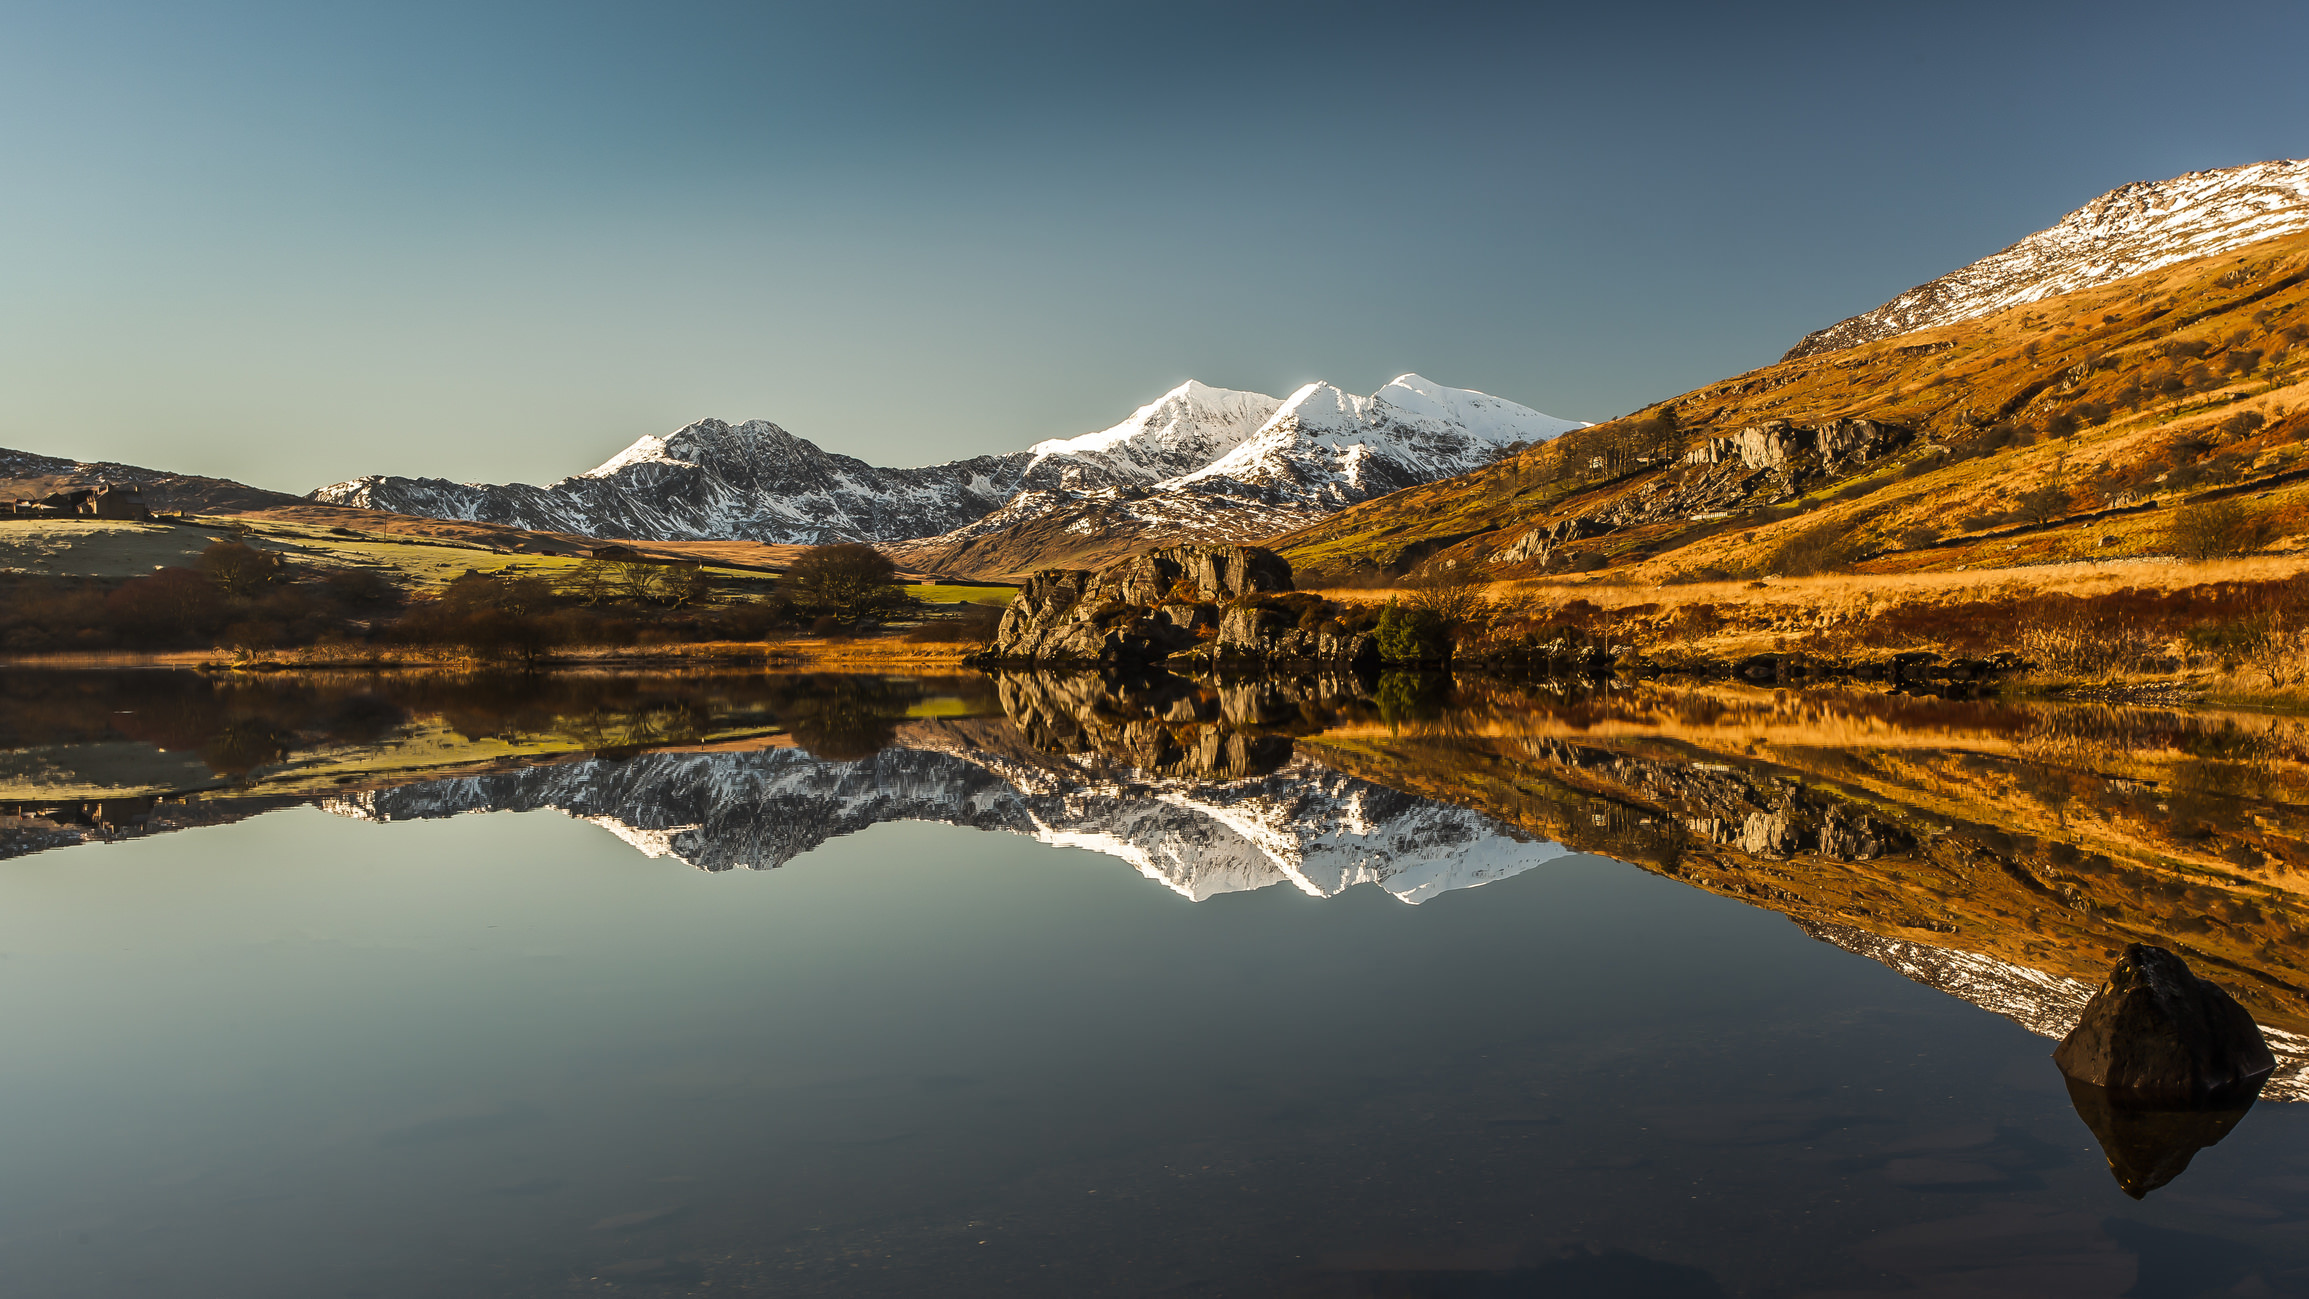 This Time-Lapse of Snowdonia Will Leave You Absolutely Breathless